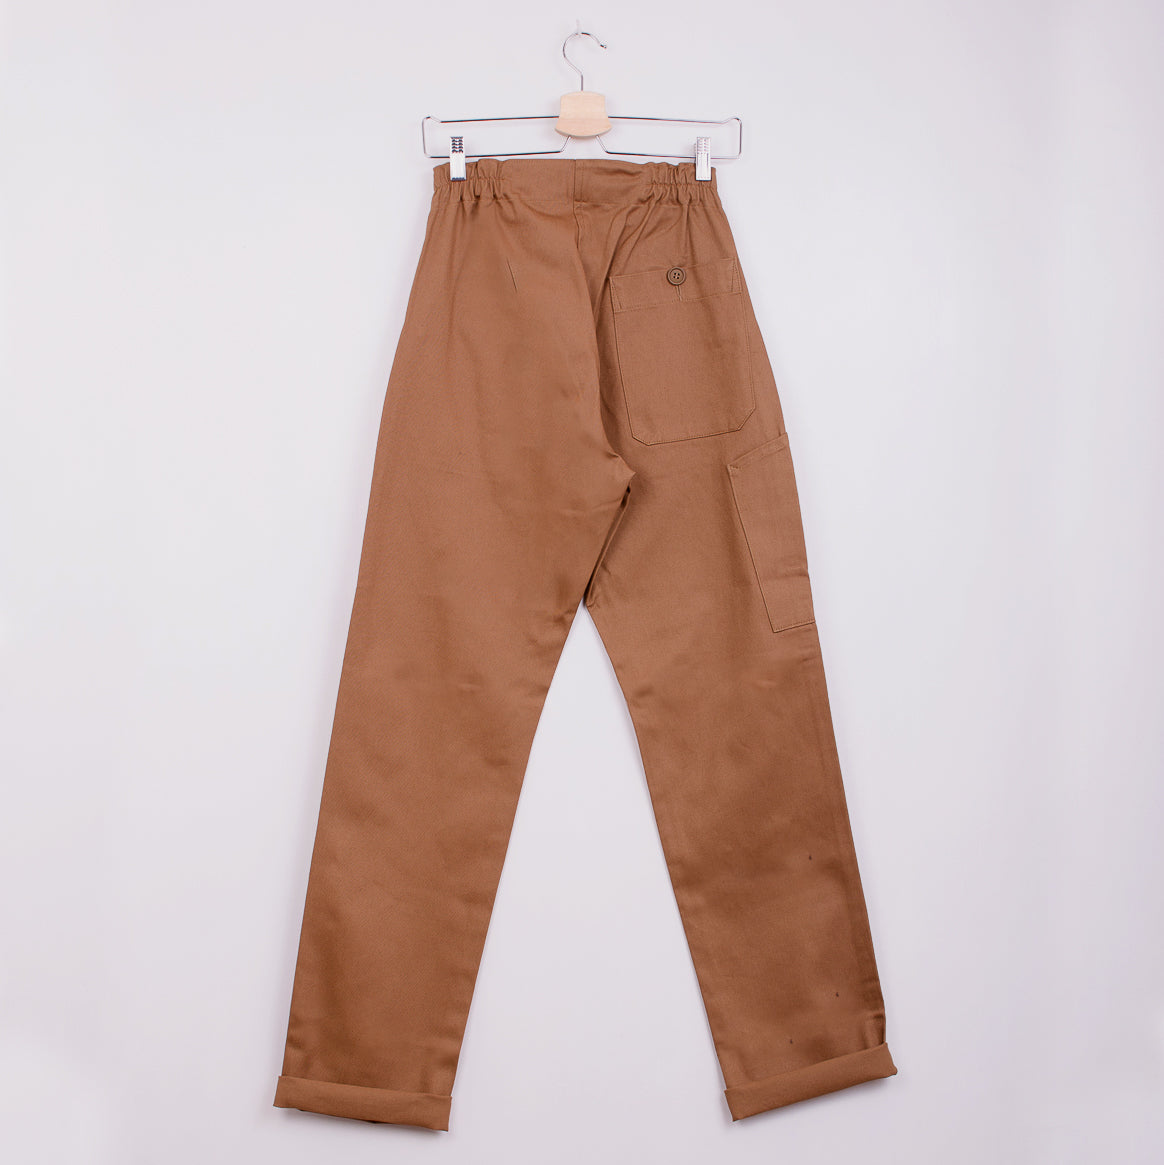 KATE SHERIDAN REE TROUSER - TOFFEE